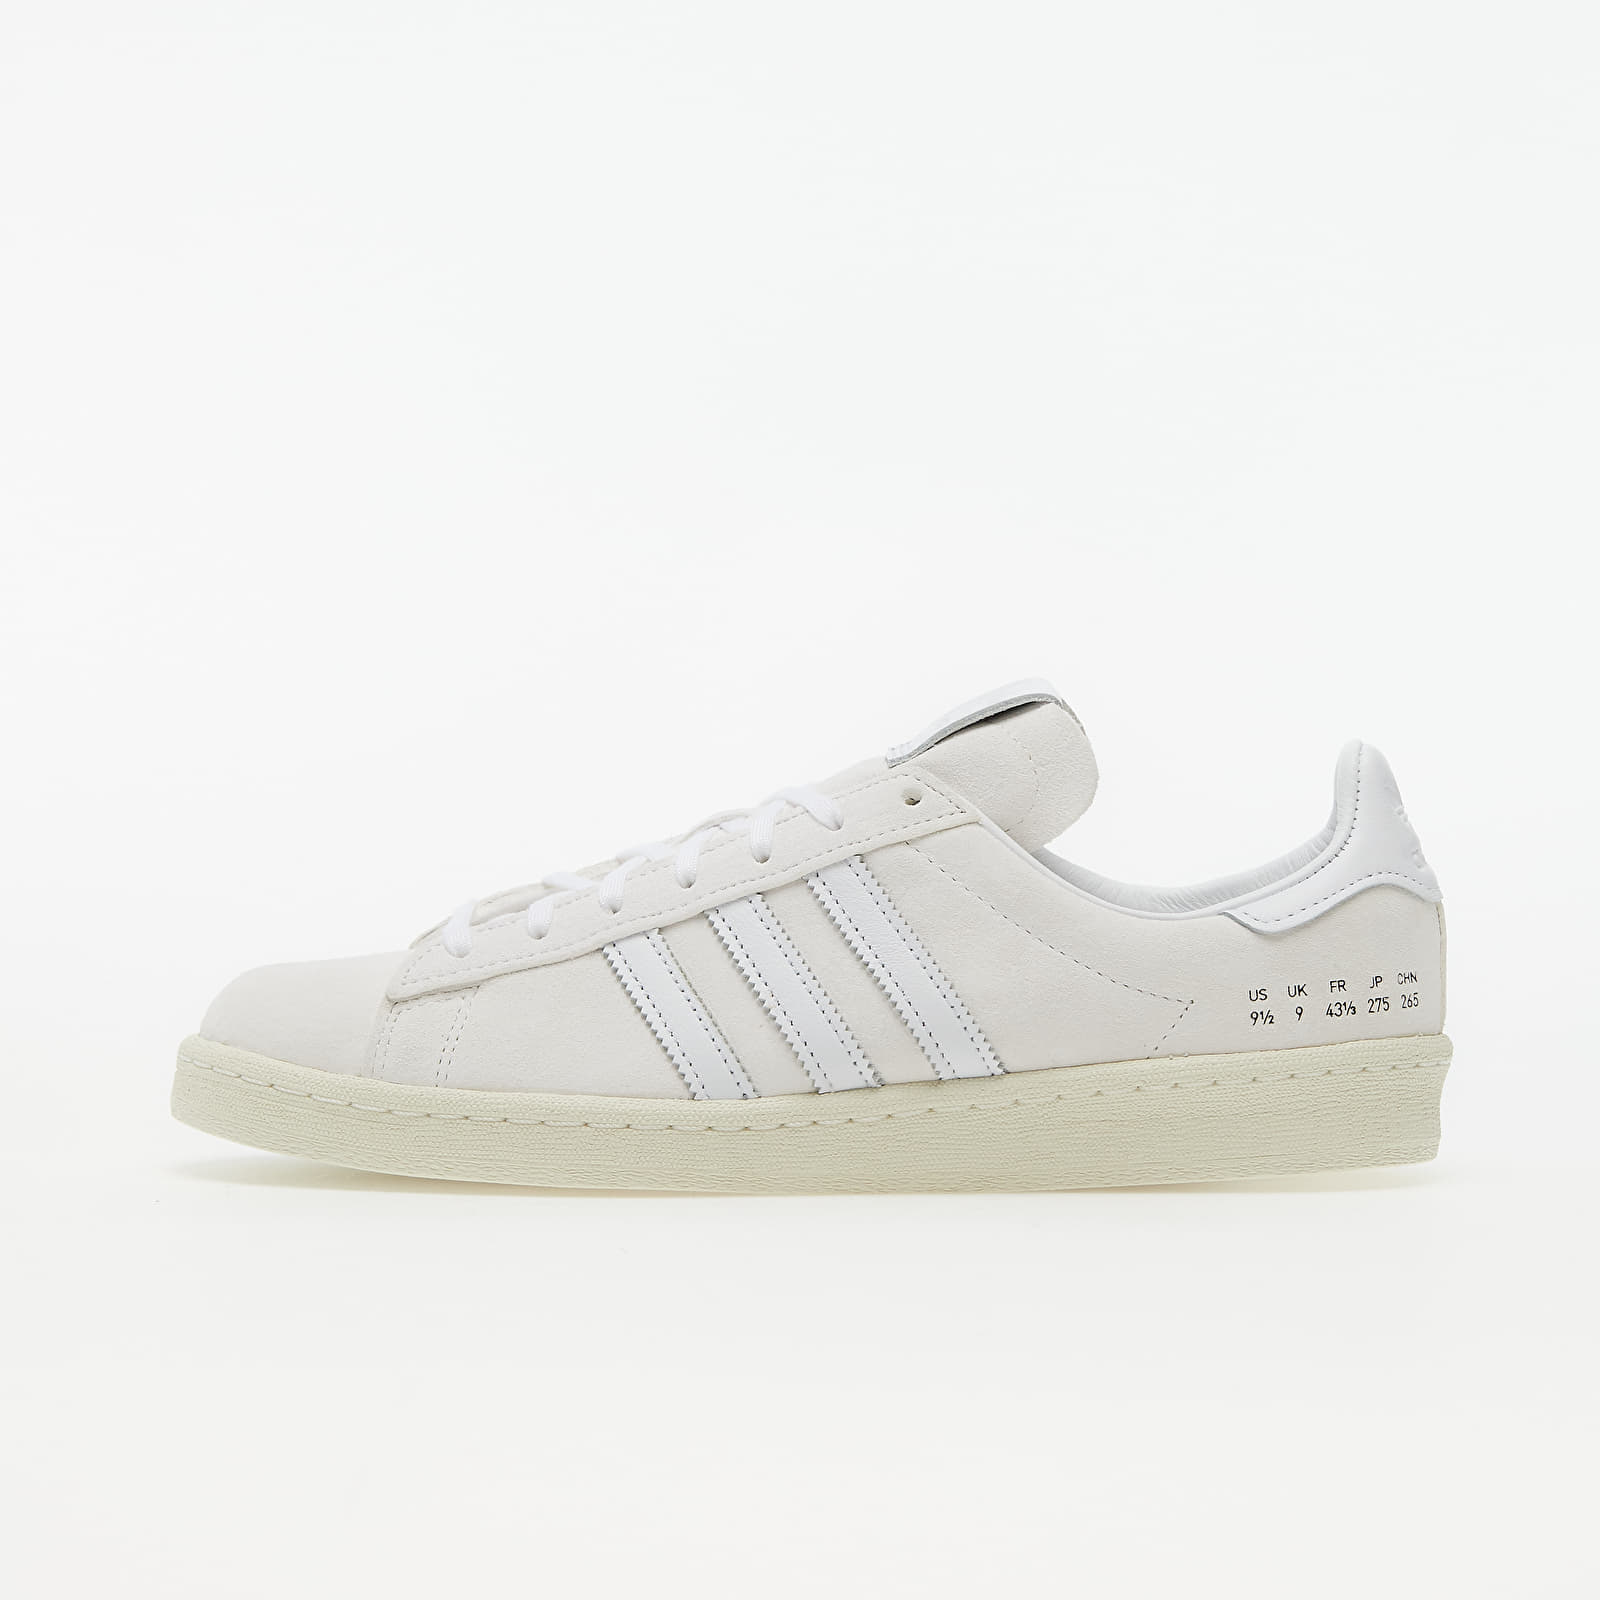 adidas Campus 80S Supplier Colour/ Ftwr White/ Off White EUR 41 1/3